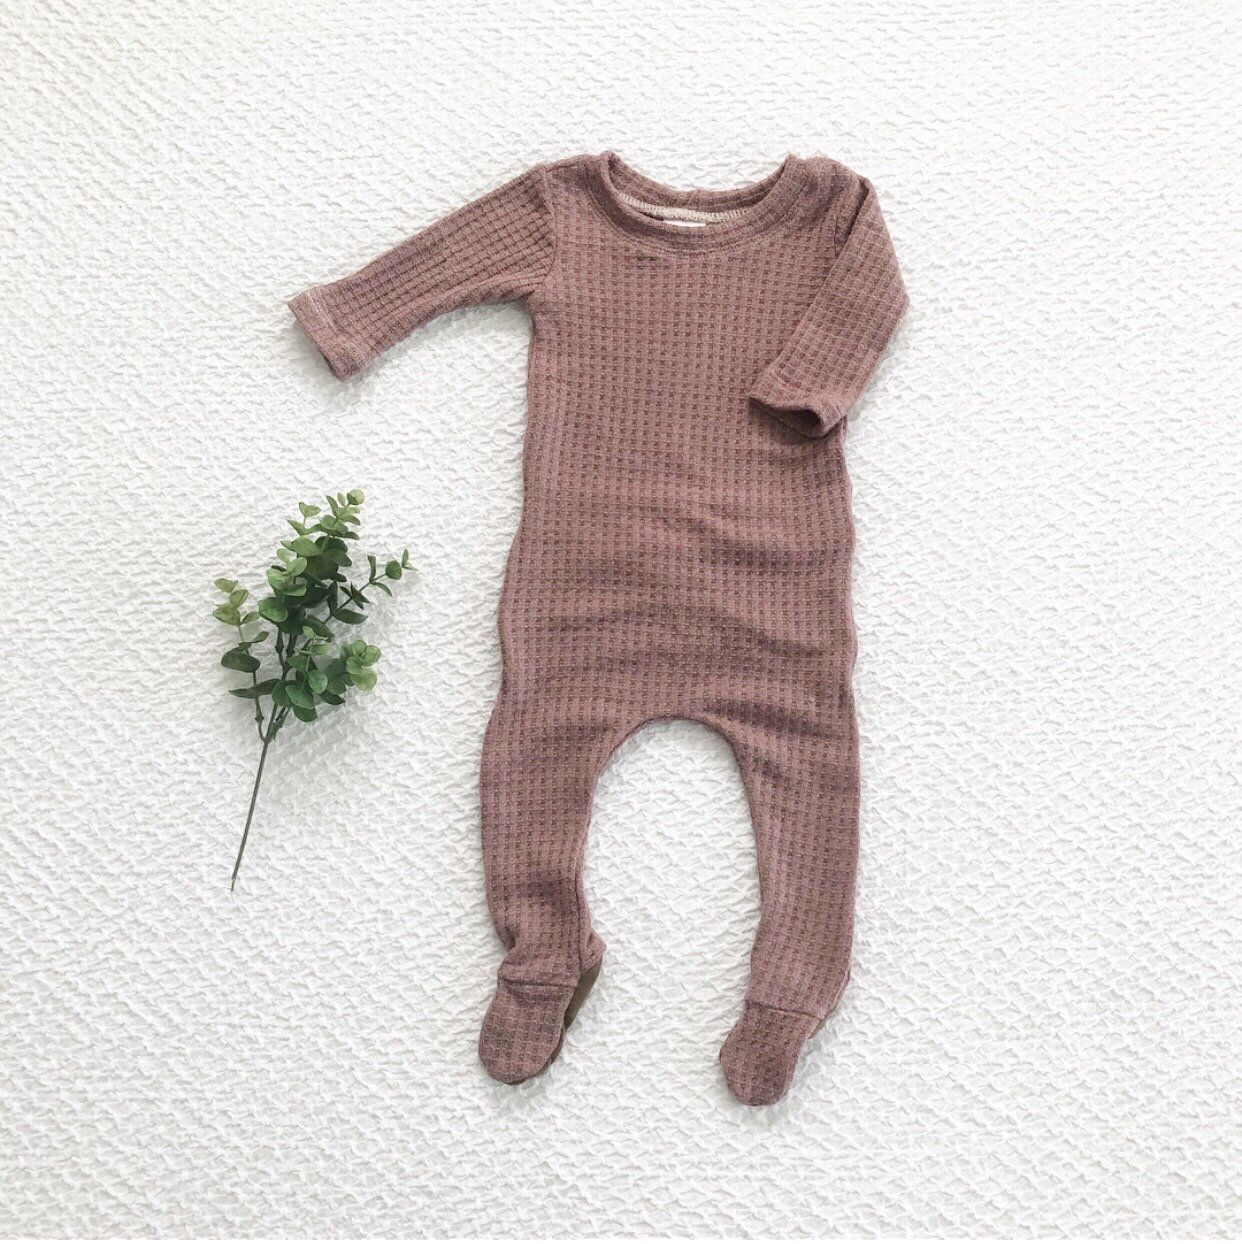 Photo of The 'Rosalie' baby girl outfit, mauve waffle knit outfit, footie pajamas, baby girl clothes, take home outfit – butt flap outfit over.